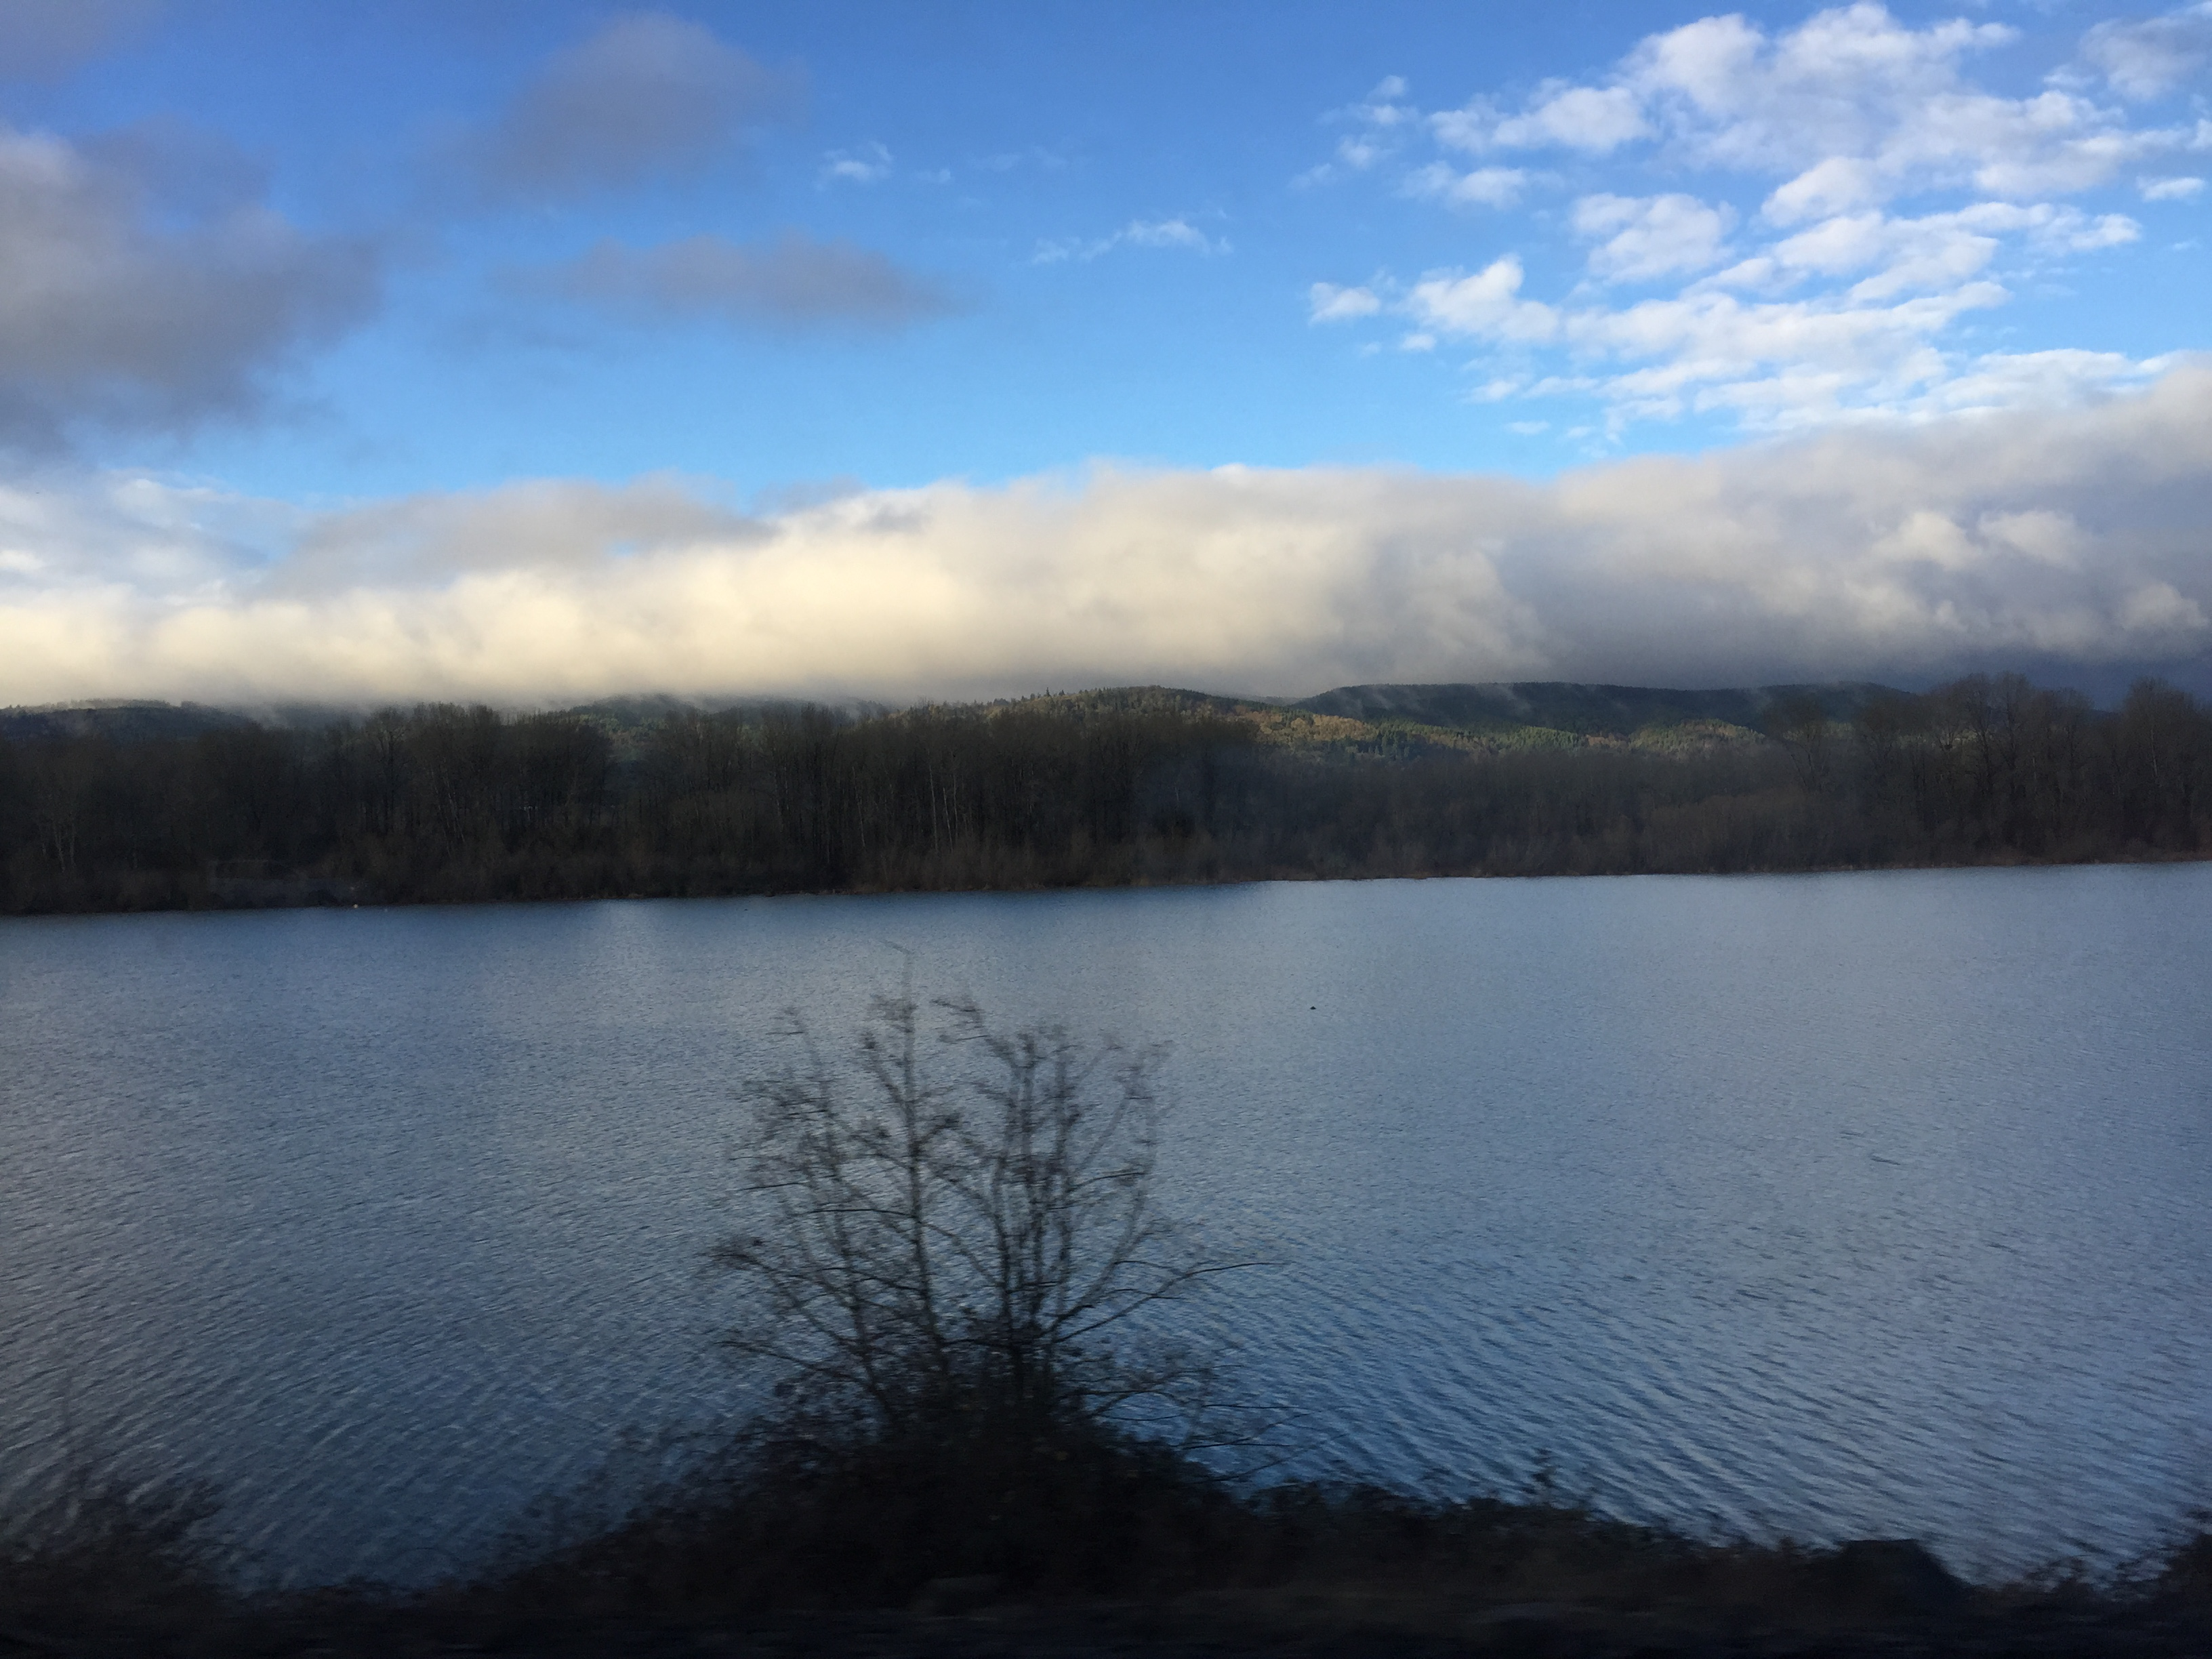 Great shots of the Columbia River